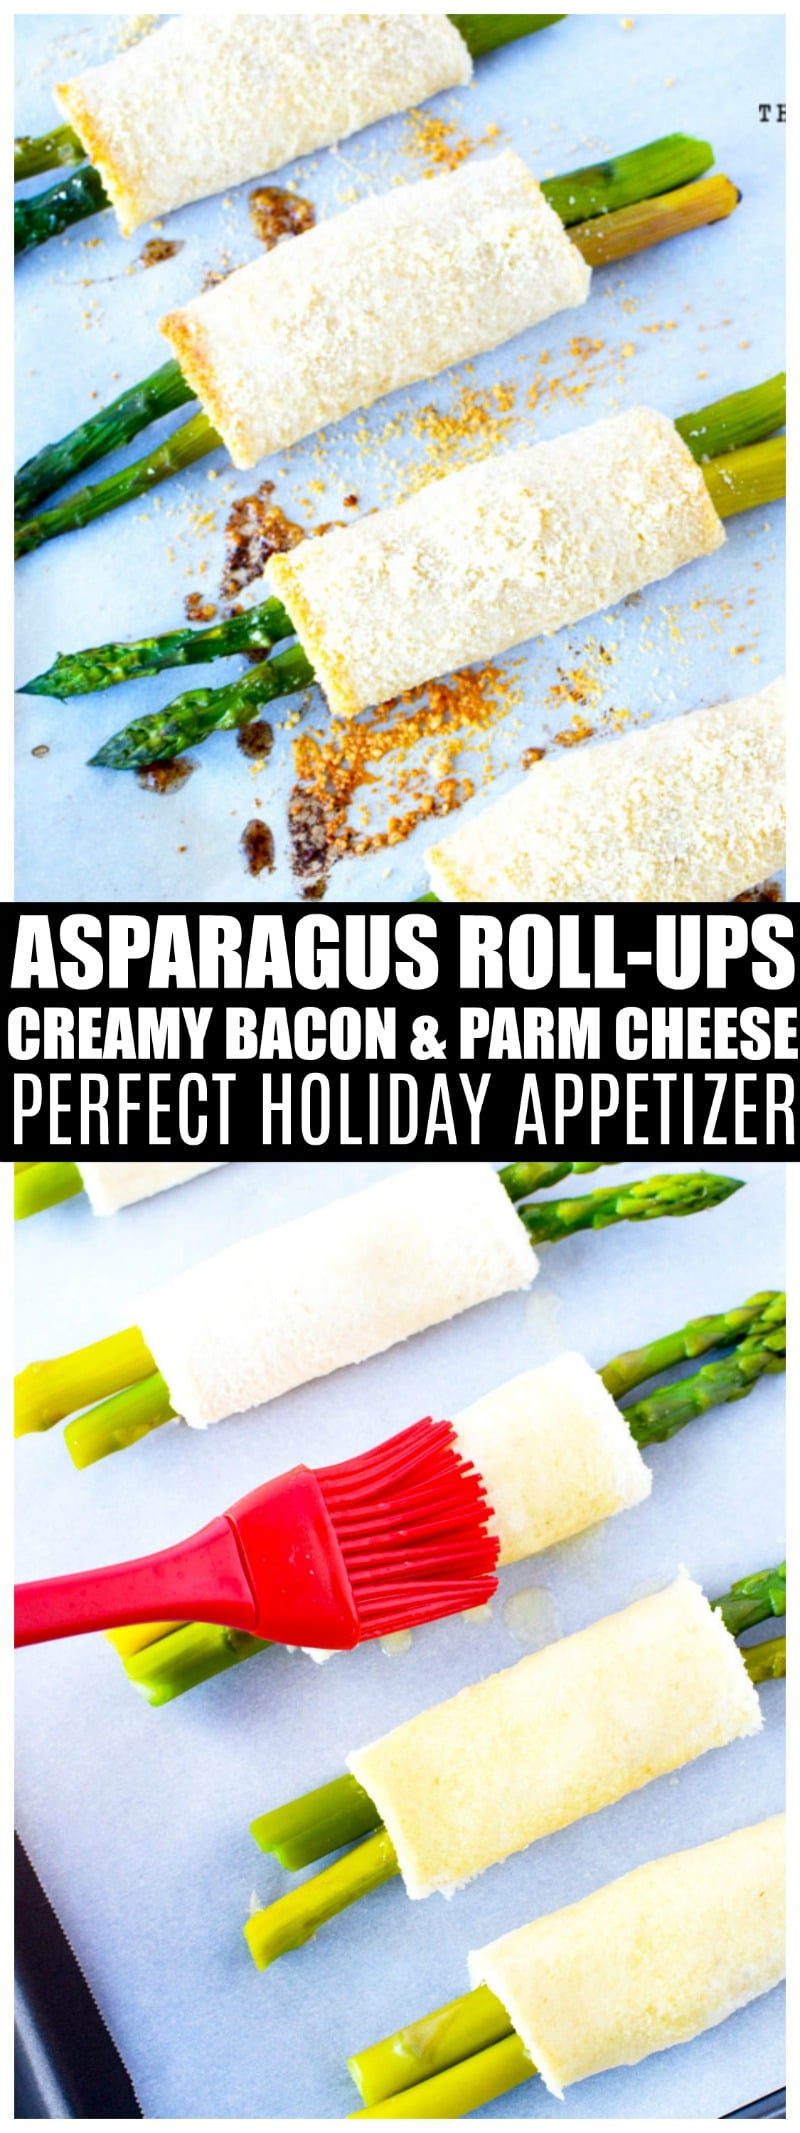 Oven Roasted Asparagus with Parmesan Cheese wrapped in bread crusts and creamy cheese is a unique asparagus appetizer for a crowd. #appetizer #sidedish #asparagus #saltysidedish #vegetables